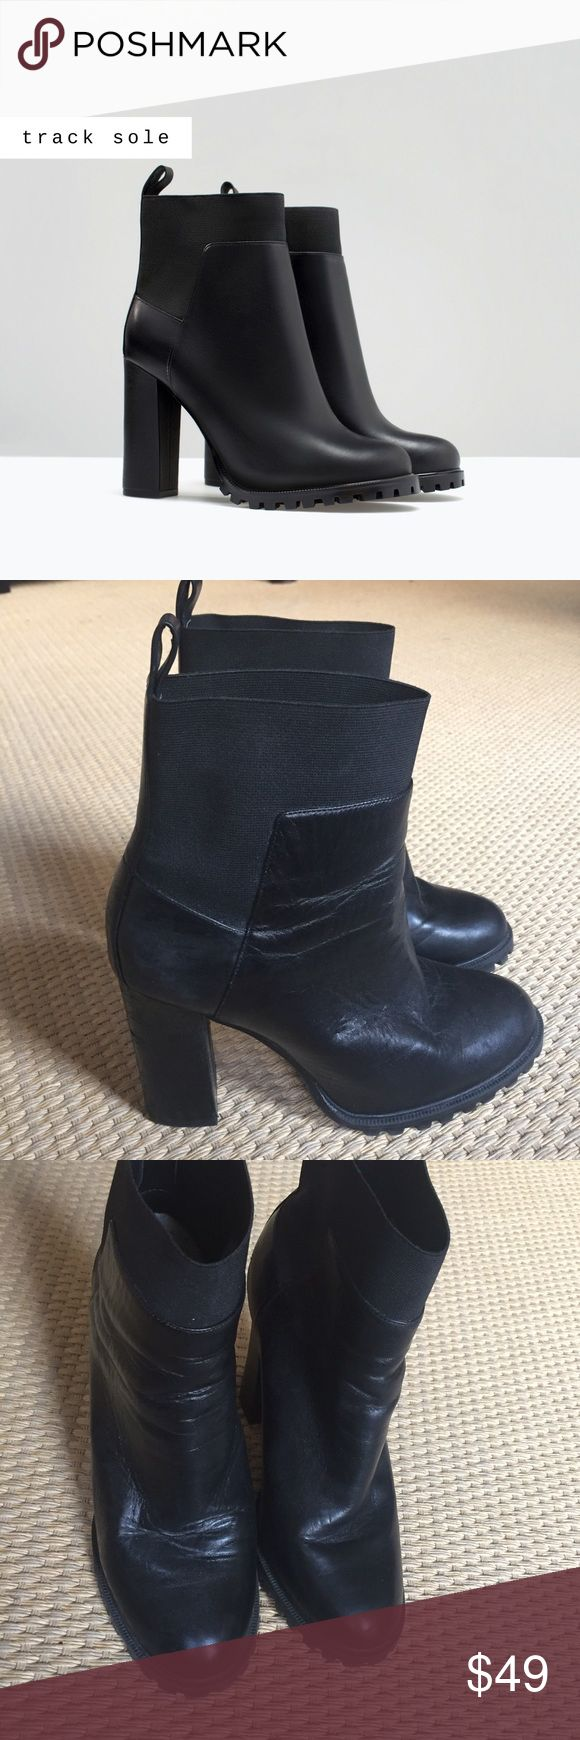 "ZARA Track Sole Leather Heeled Ankle Boot 🖤 Surprisingly Comfortable, commanding heel height! Gently used but in great condition - Black leather ankle boots with pull-on tab and elastic panels as show. Easy on easy off, but definitely feel secure to your foot! Track sole, heel height 4"" 🖤 Zara Shoes Ankle Boots & Booties"